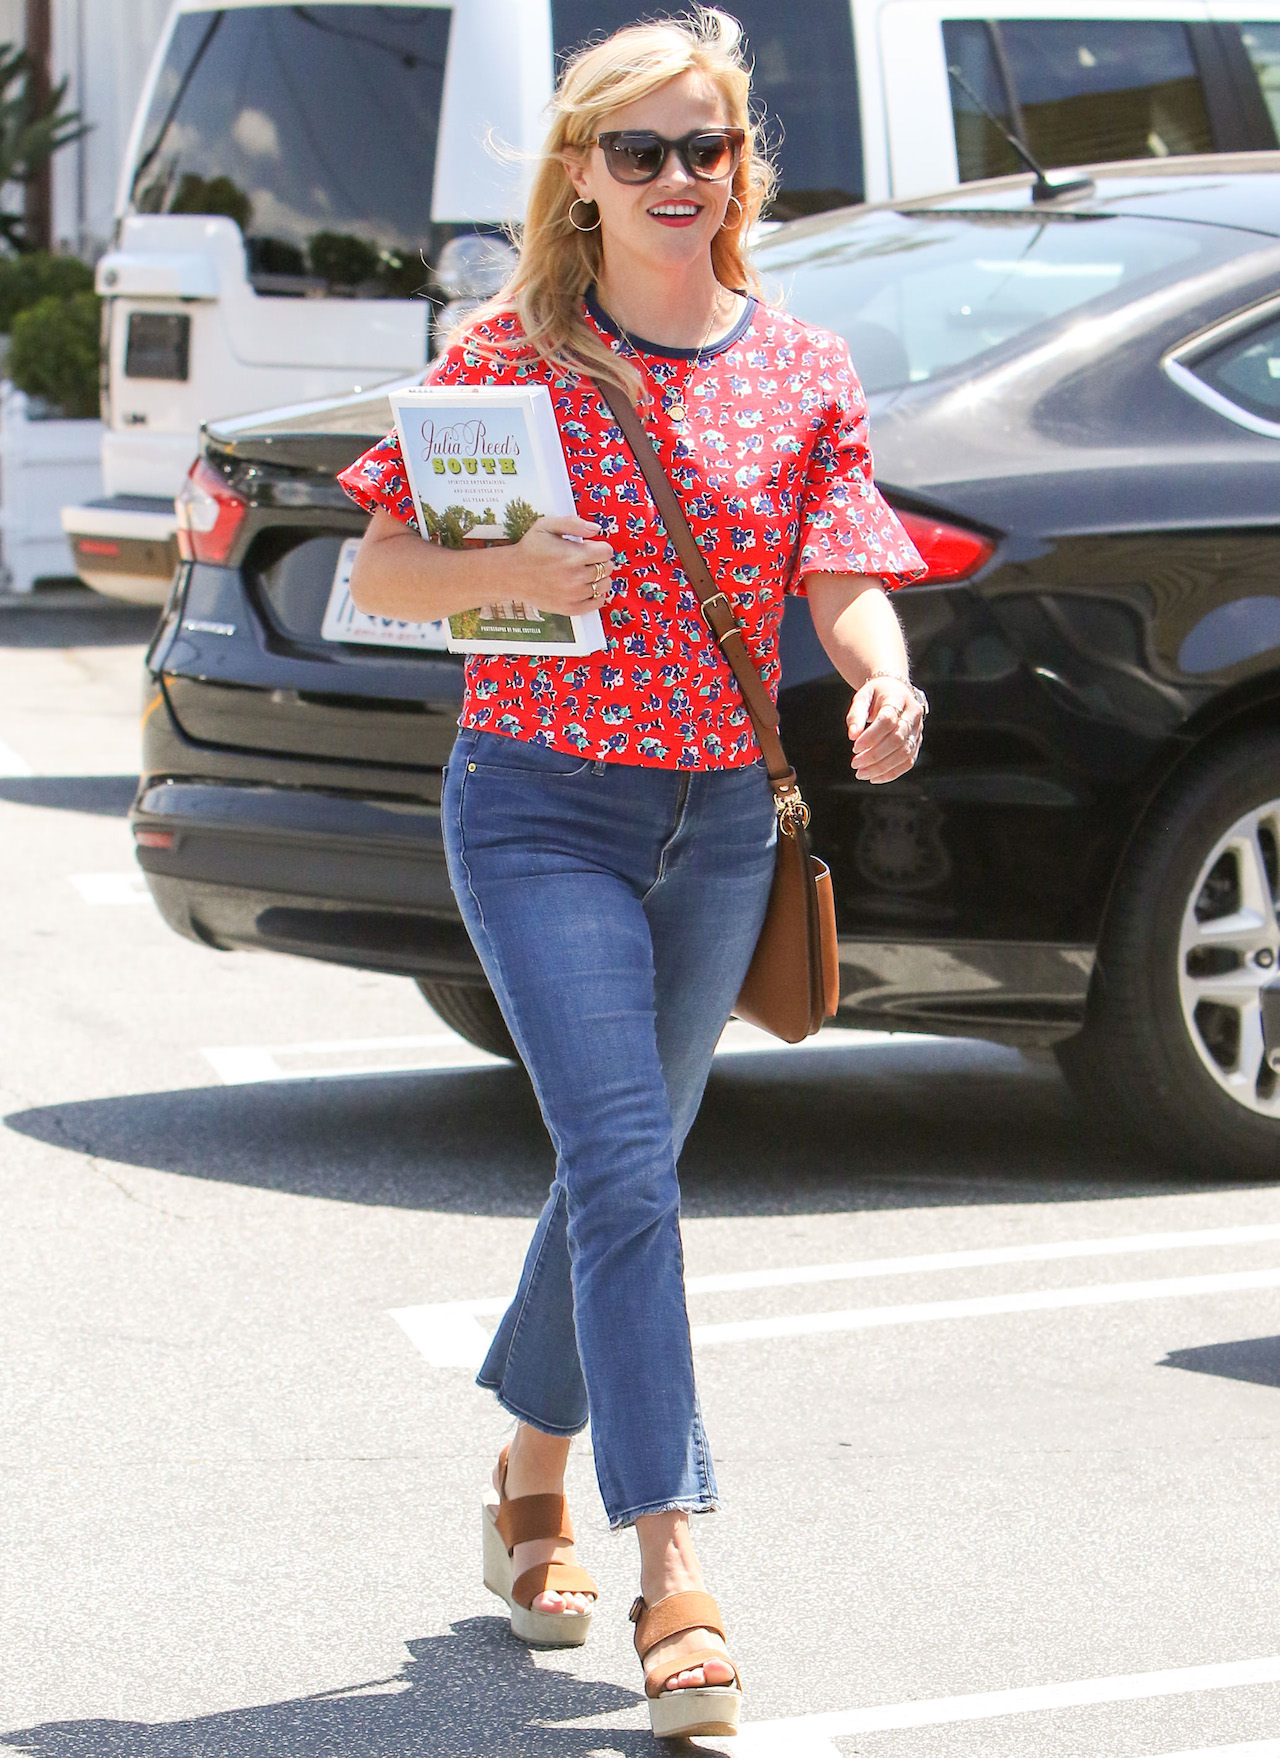 Reese Witherspoon Reading List: 16 Books Optioned By The Legally Blonde Bookworm